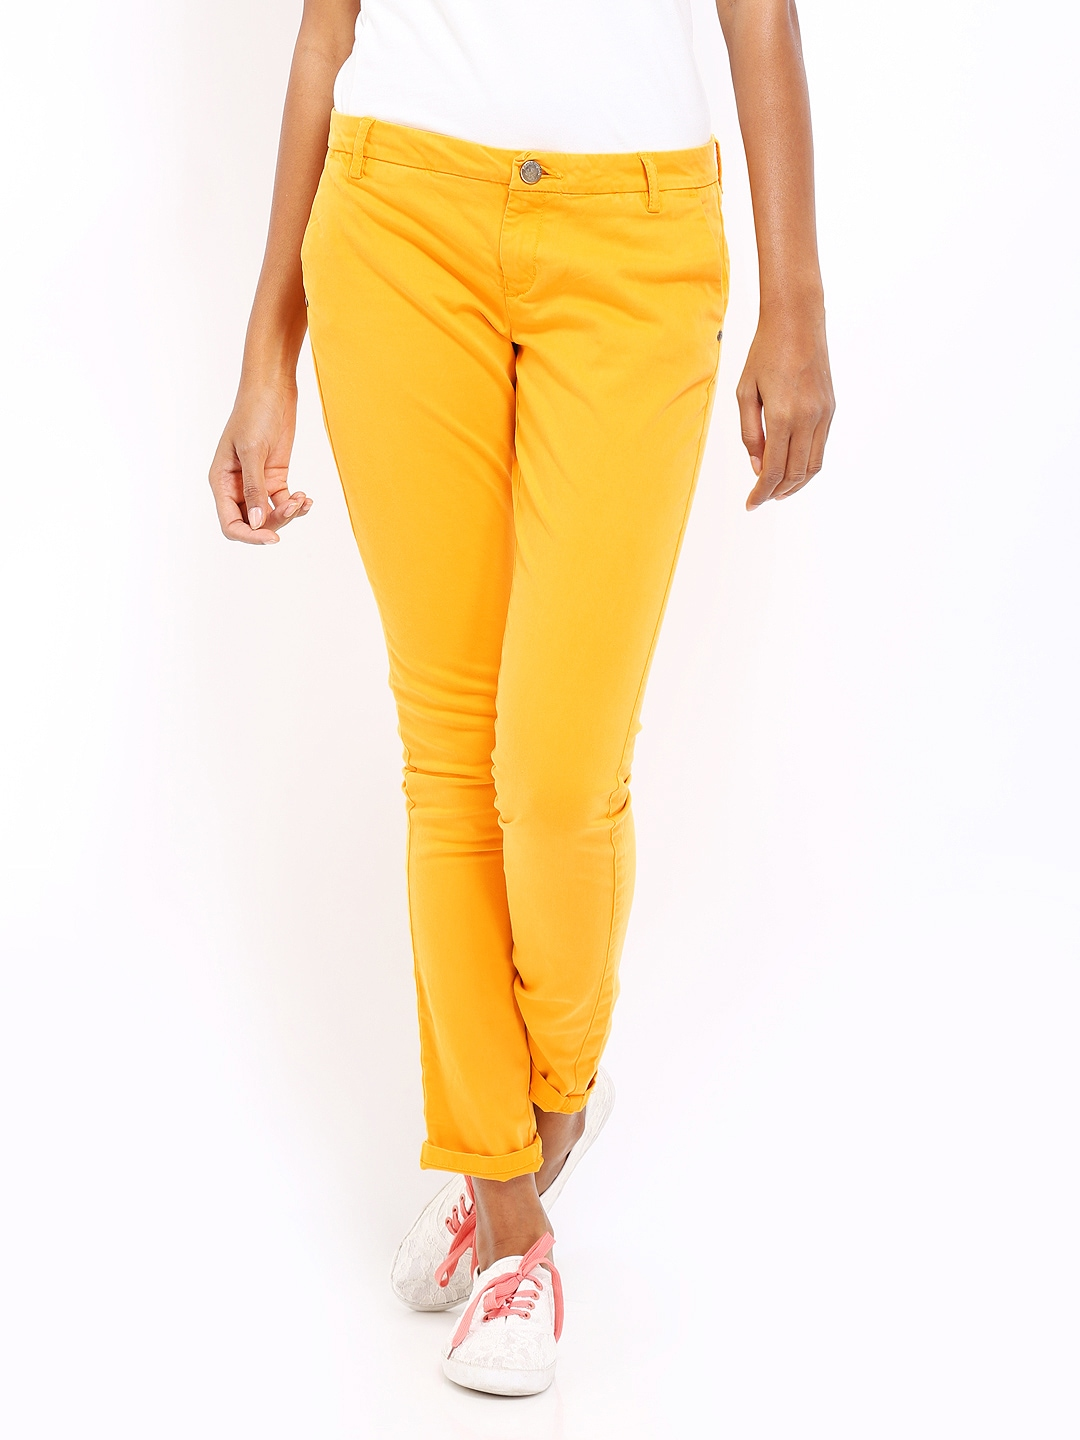 Excellent Tshirtcompany Women Mustard Yellow Track Pants Online Shopping India